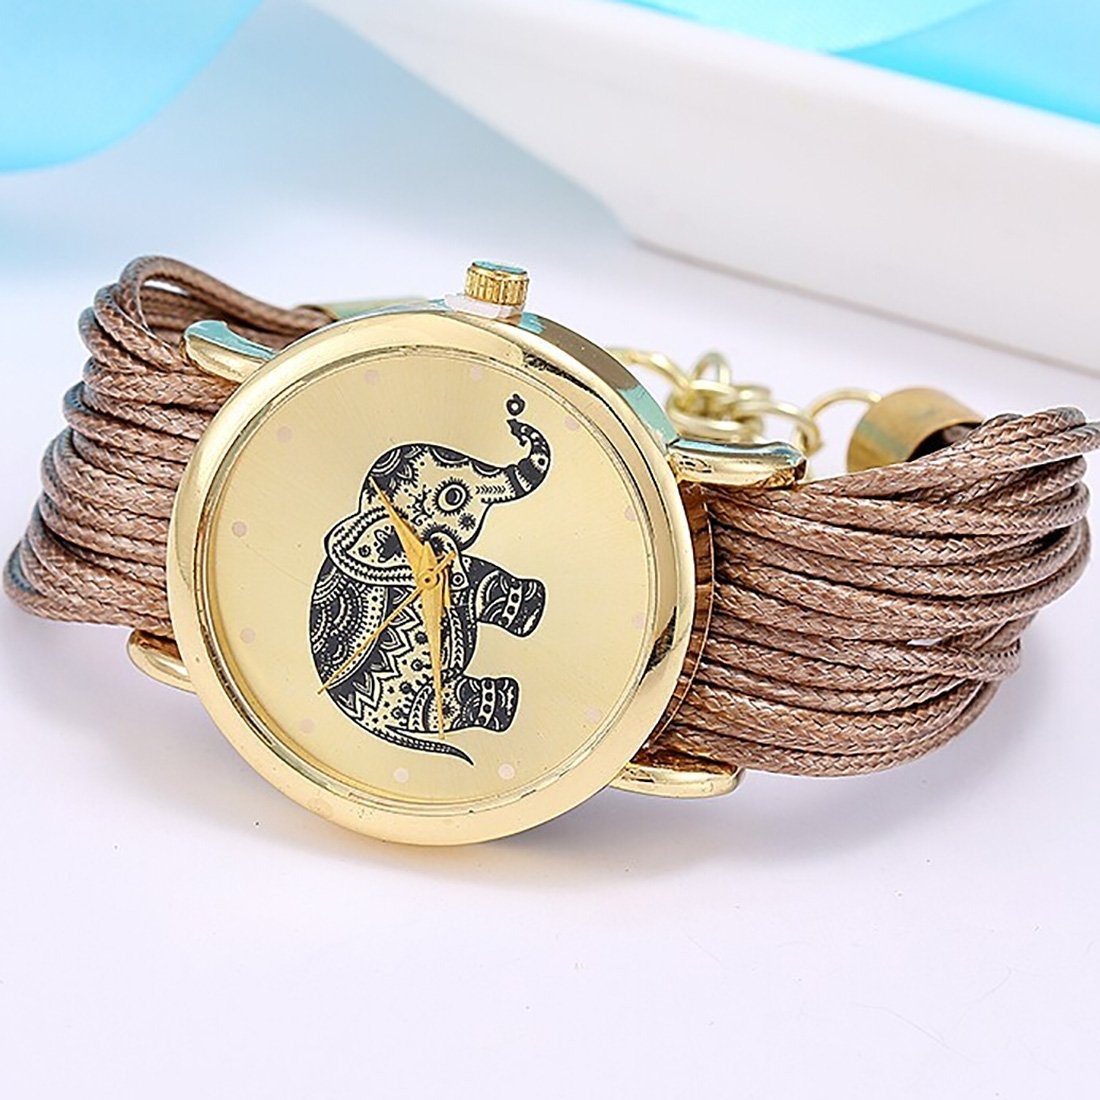 Amazon.com: 2016 Relojes Mujer Jewelry Fashion Women Dress Elephant Design Bracelet Watch Femme Quartz Watch Relogio Feminino Brown: Watches